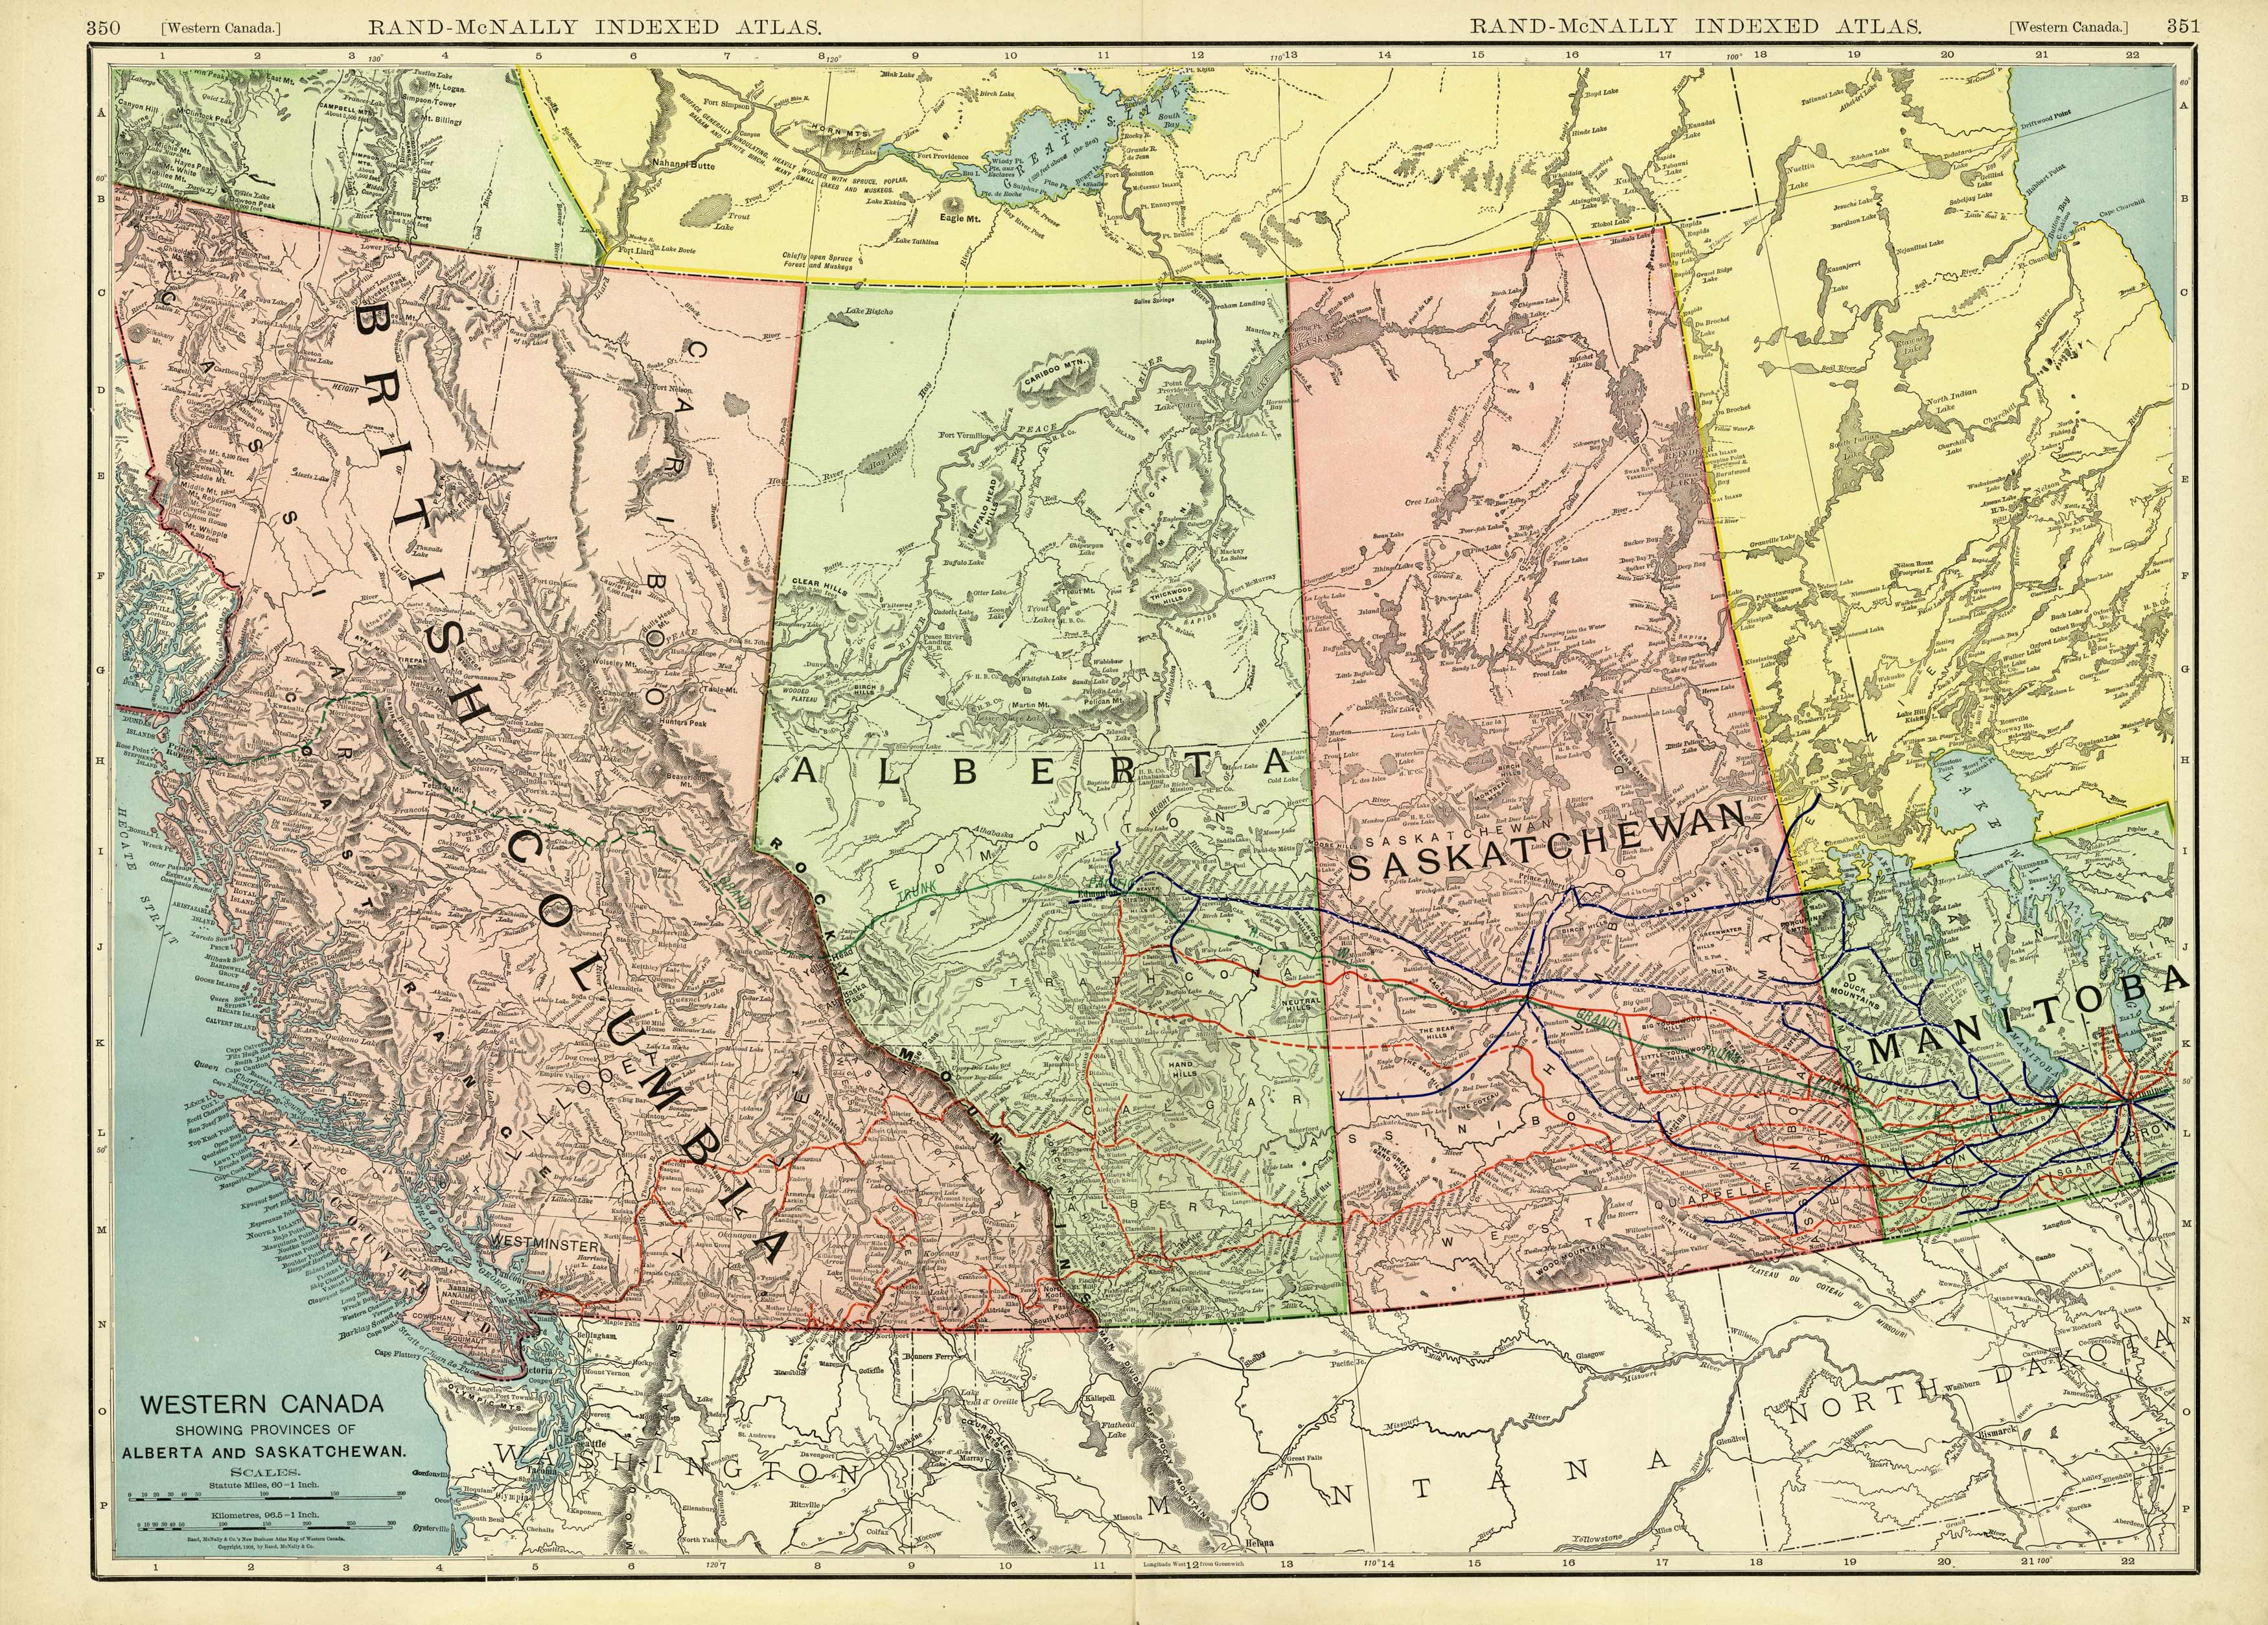 Western Canada Showing the Provinces of Alberta and Saskatchewan